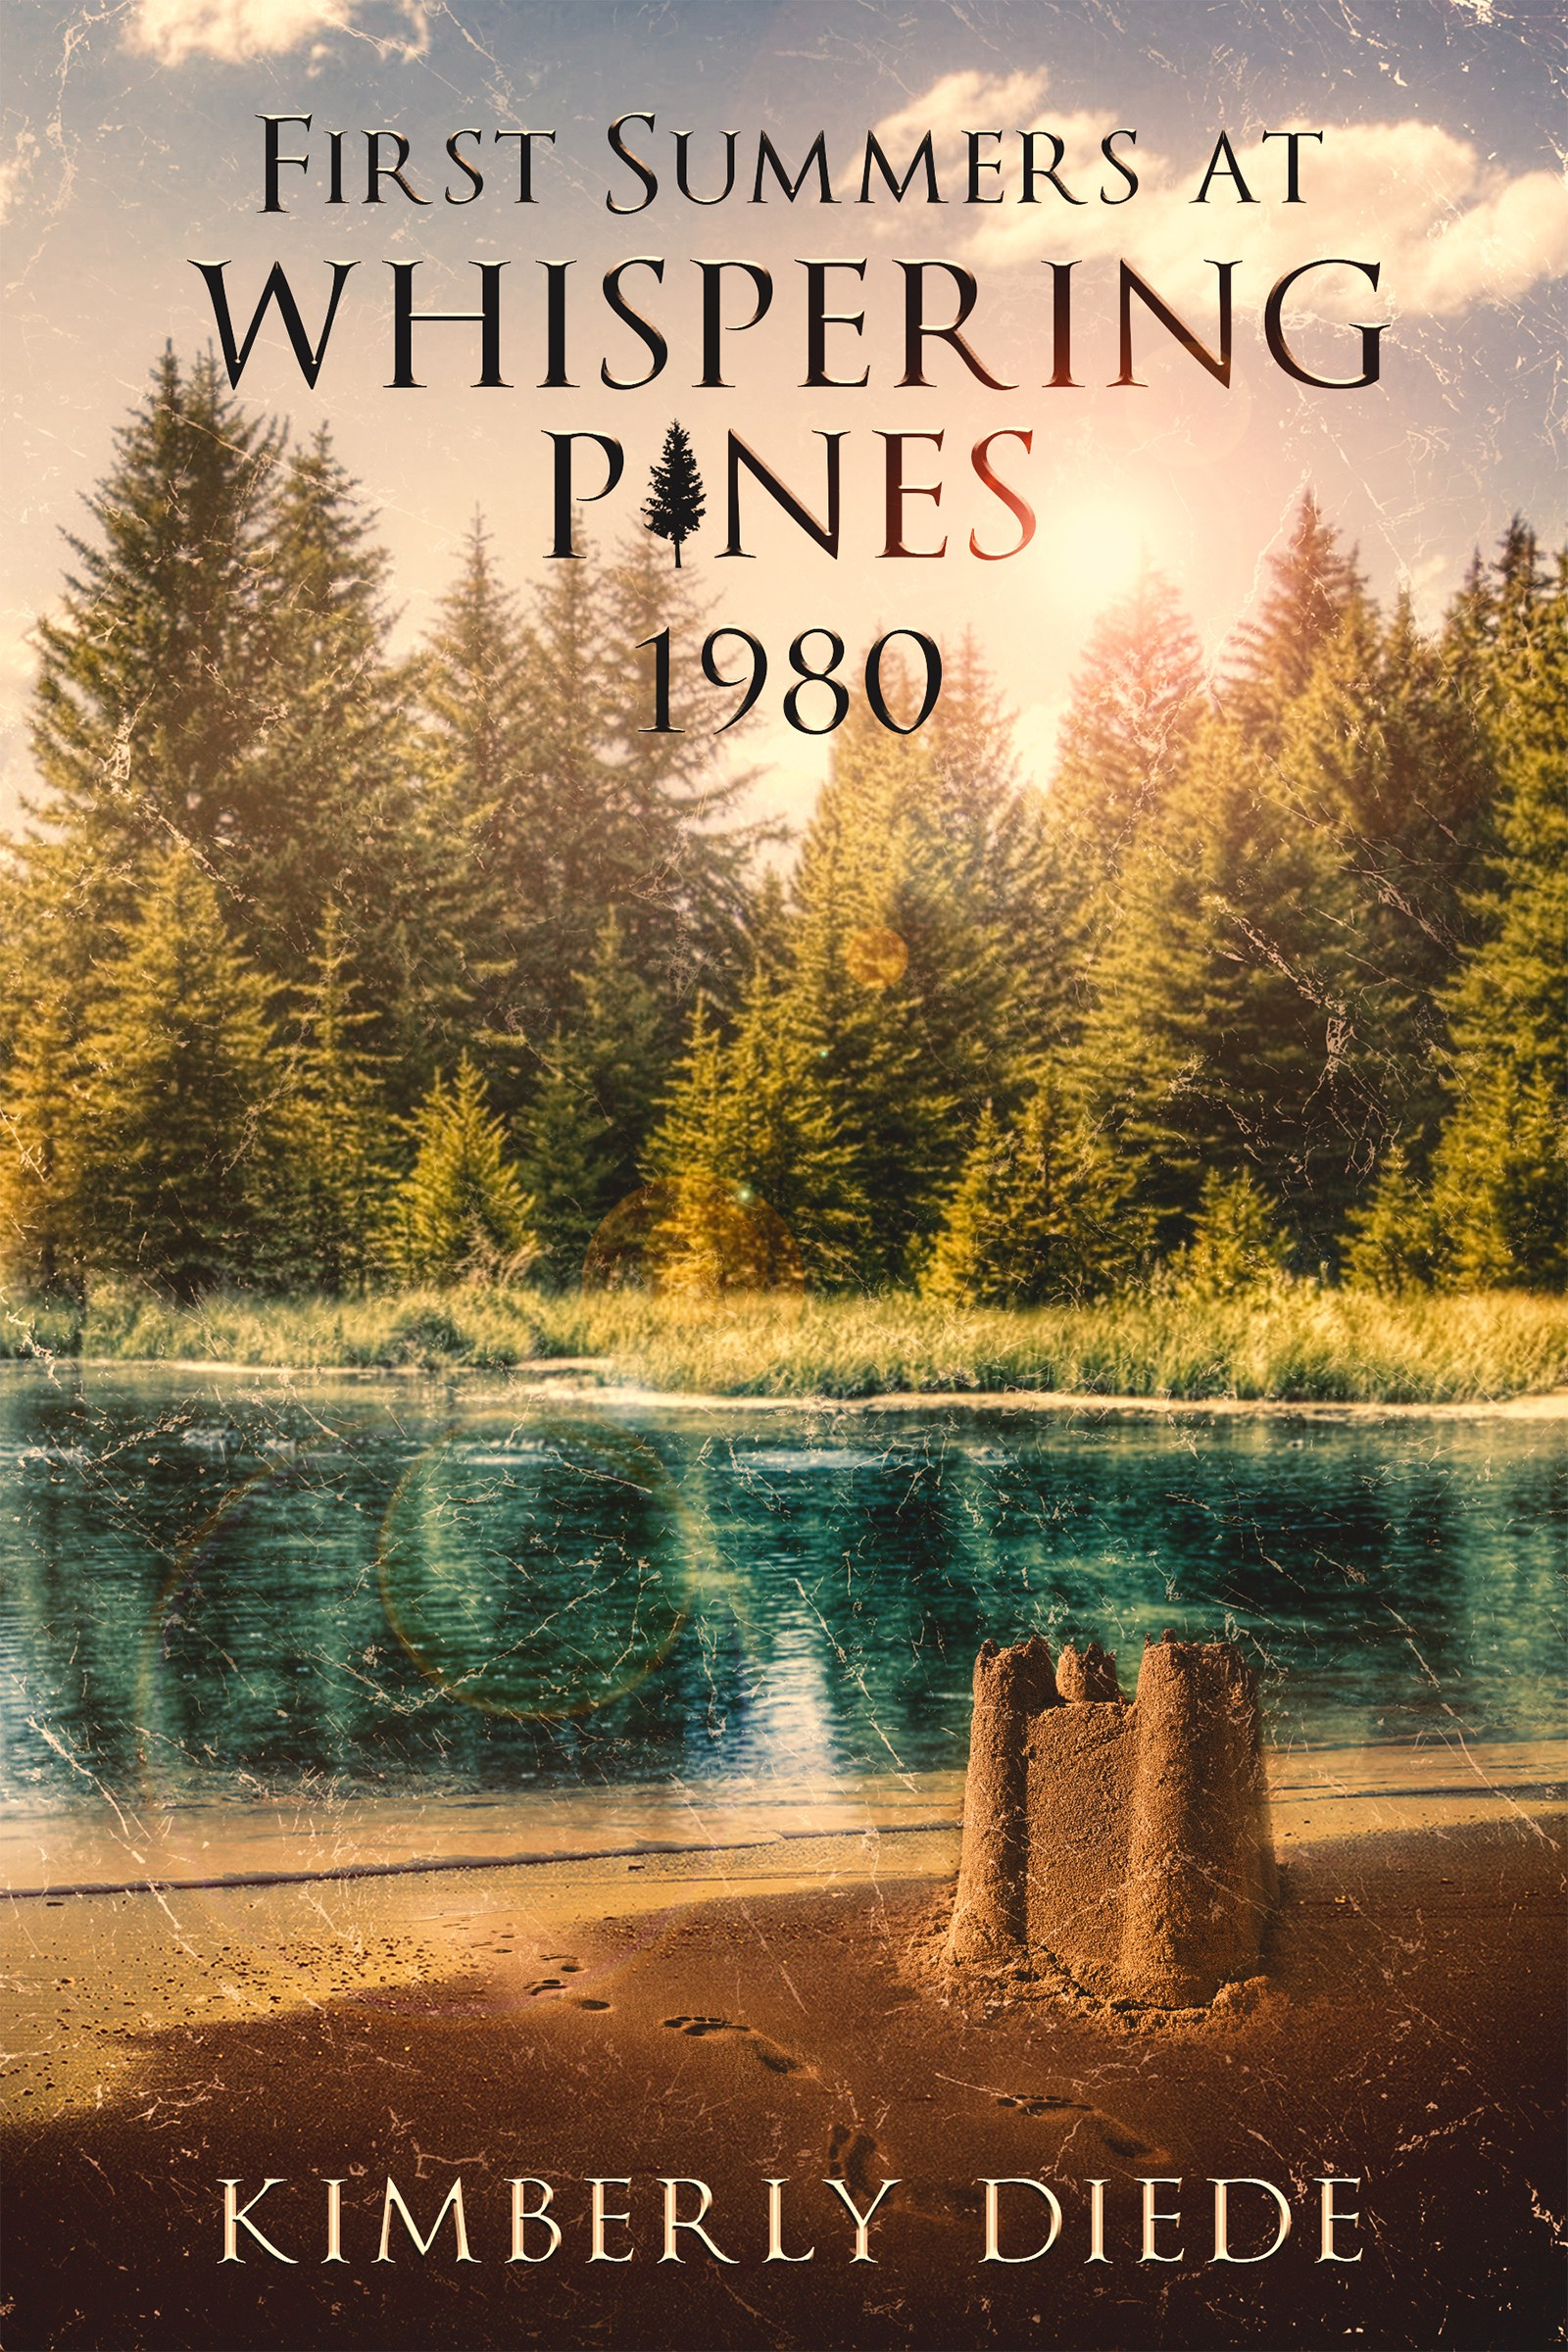 First Summers at Whispering Pines 1980